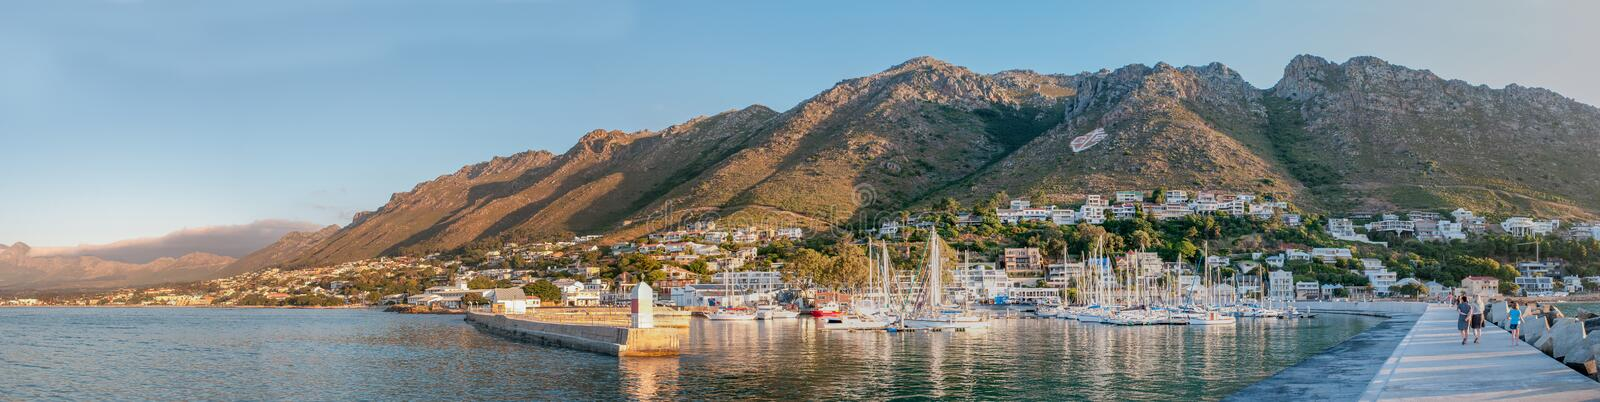 Panorama of Gordons Bay harbor and Hottentots-Holland Mountains. CAPE TOWN, SOUTH AFRICA - DECEMBER 11, 2014: Sunset panorama of the harbor in Gordons Bay with stock photos